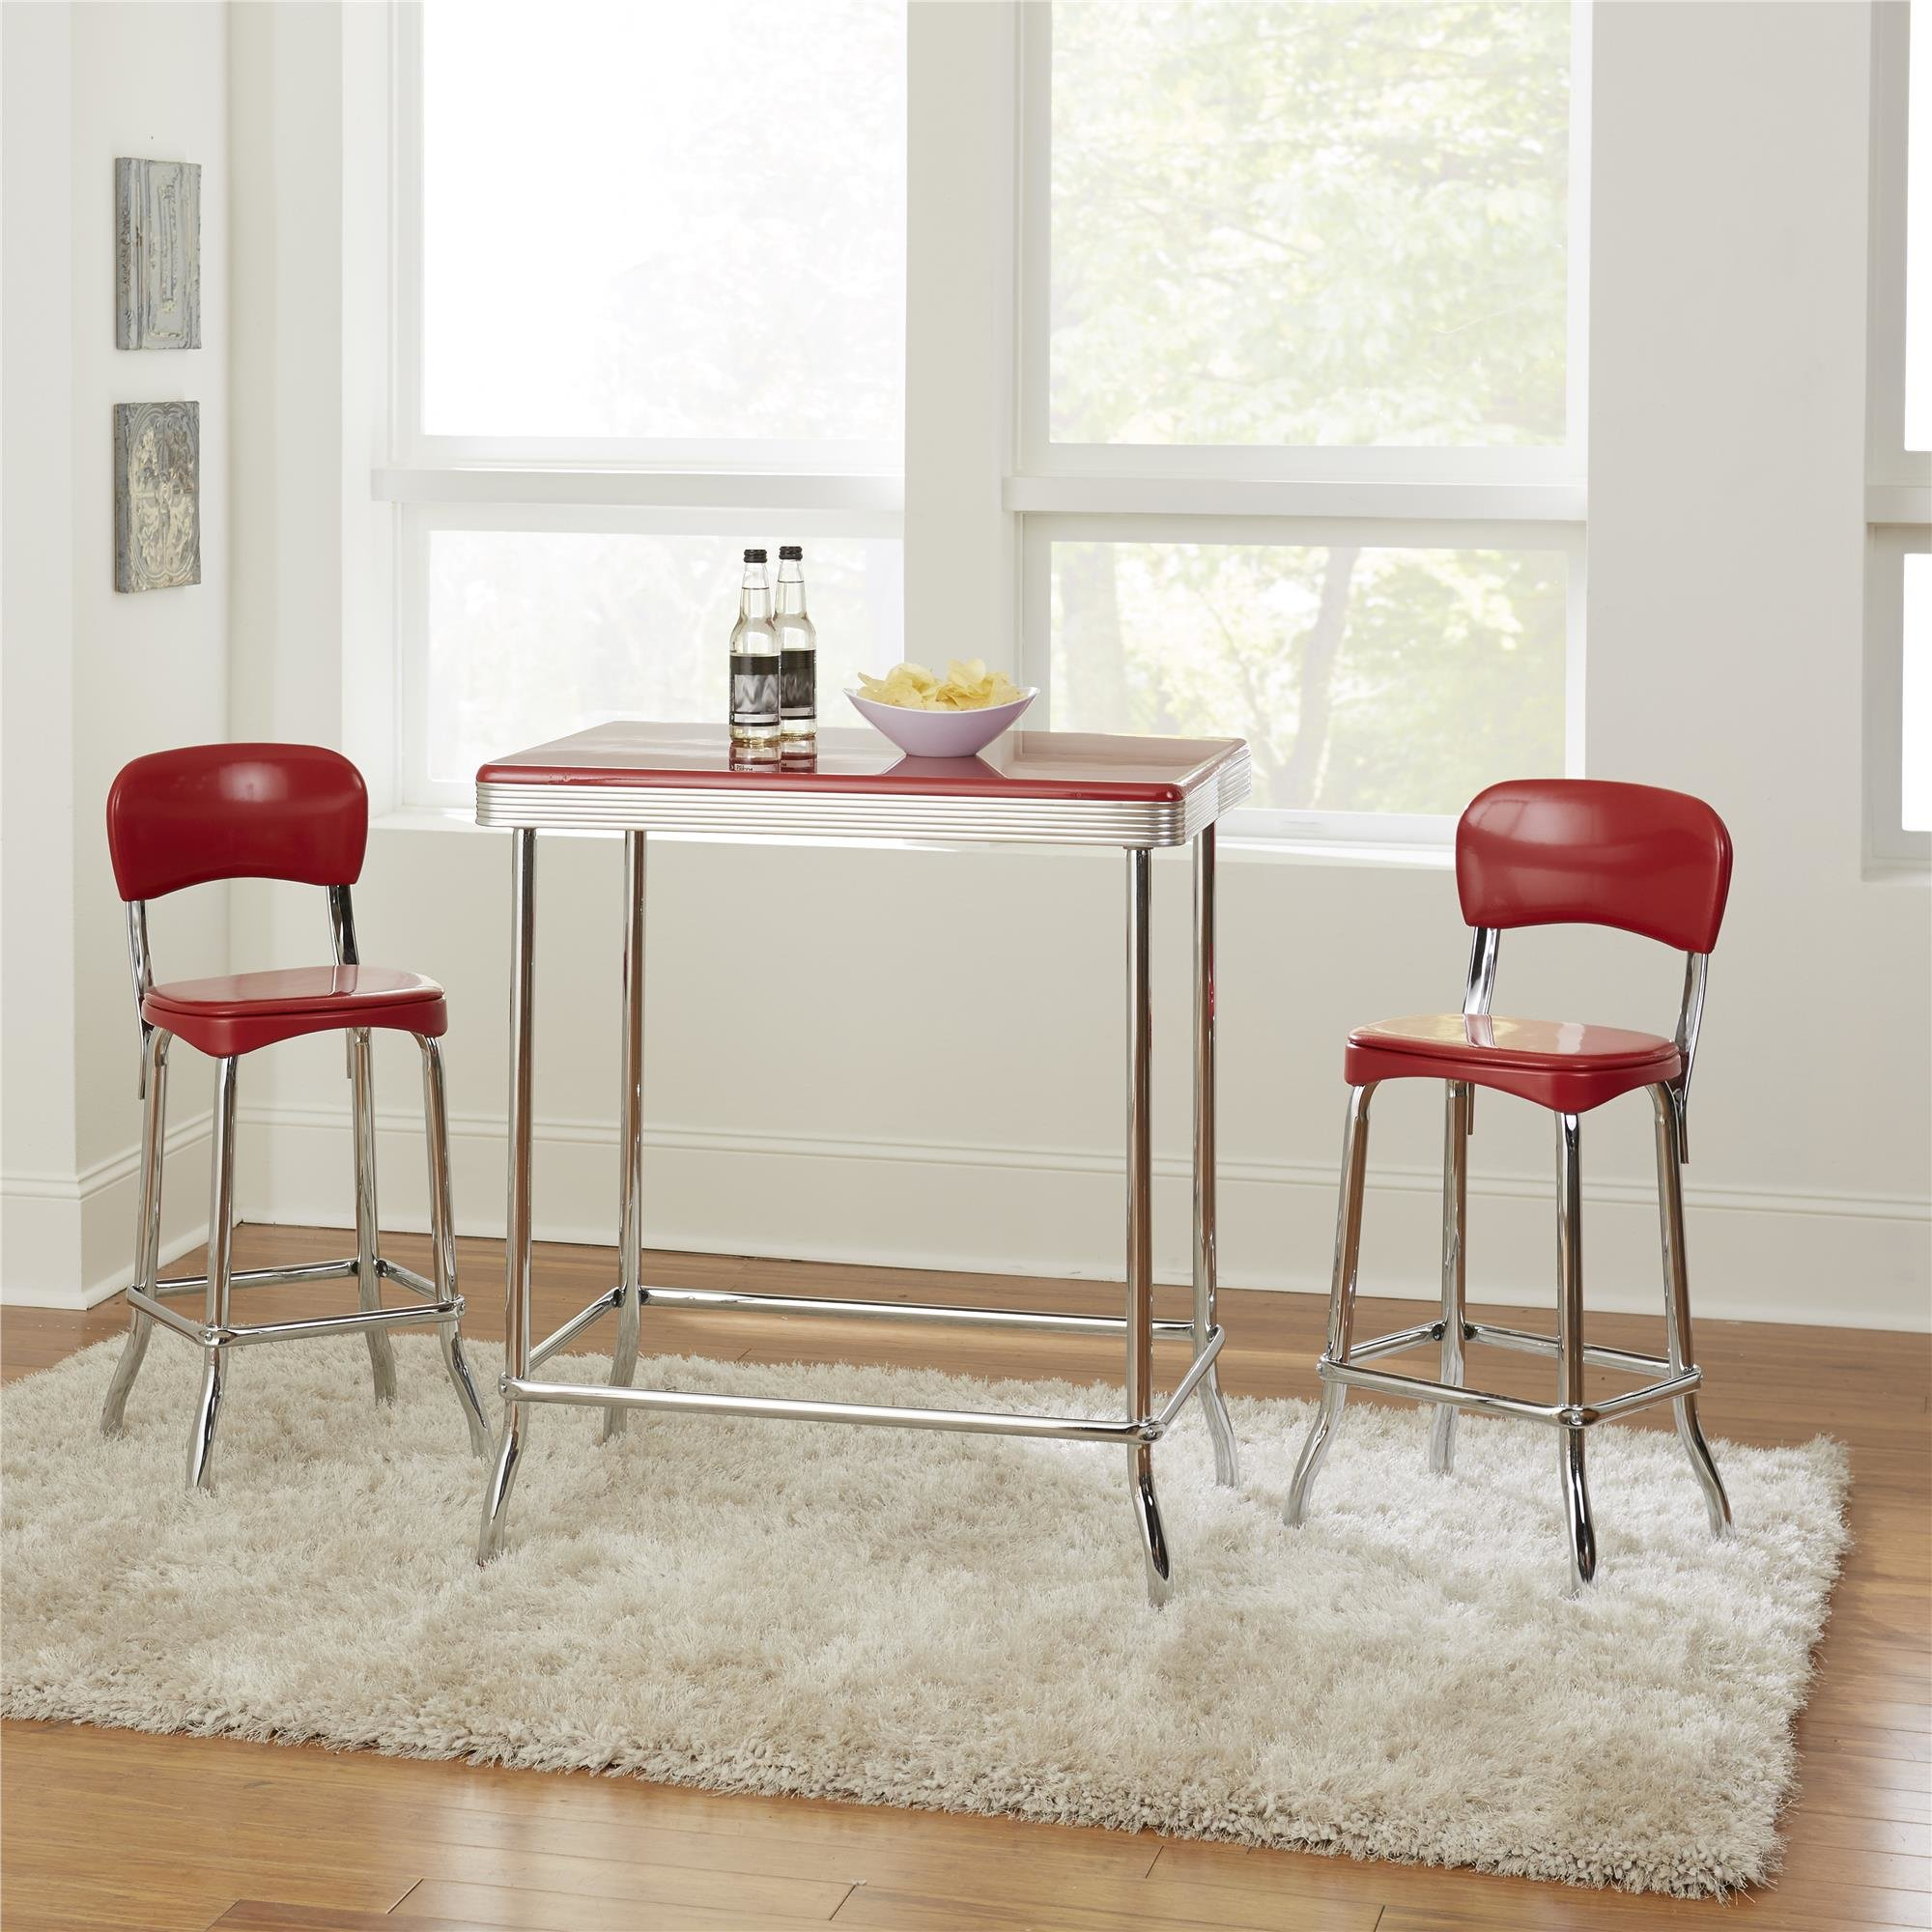 Bate Red Retro 3 Piece Dining Set Inside Latest Mizpah 3 Piece Counter Height Dining Sets (Image 5 of 20)